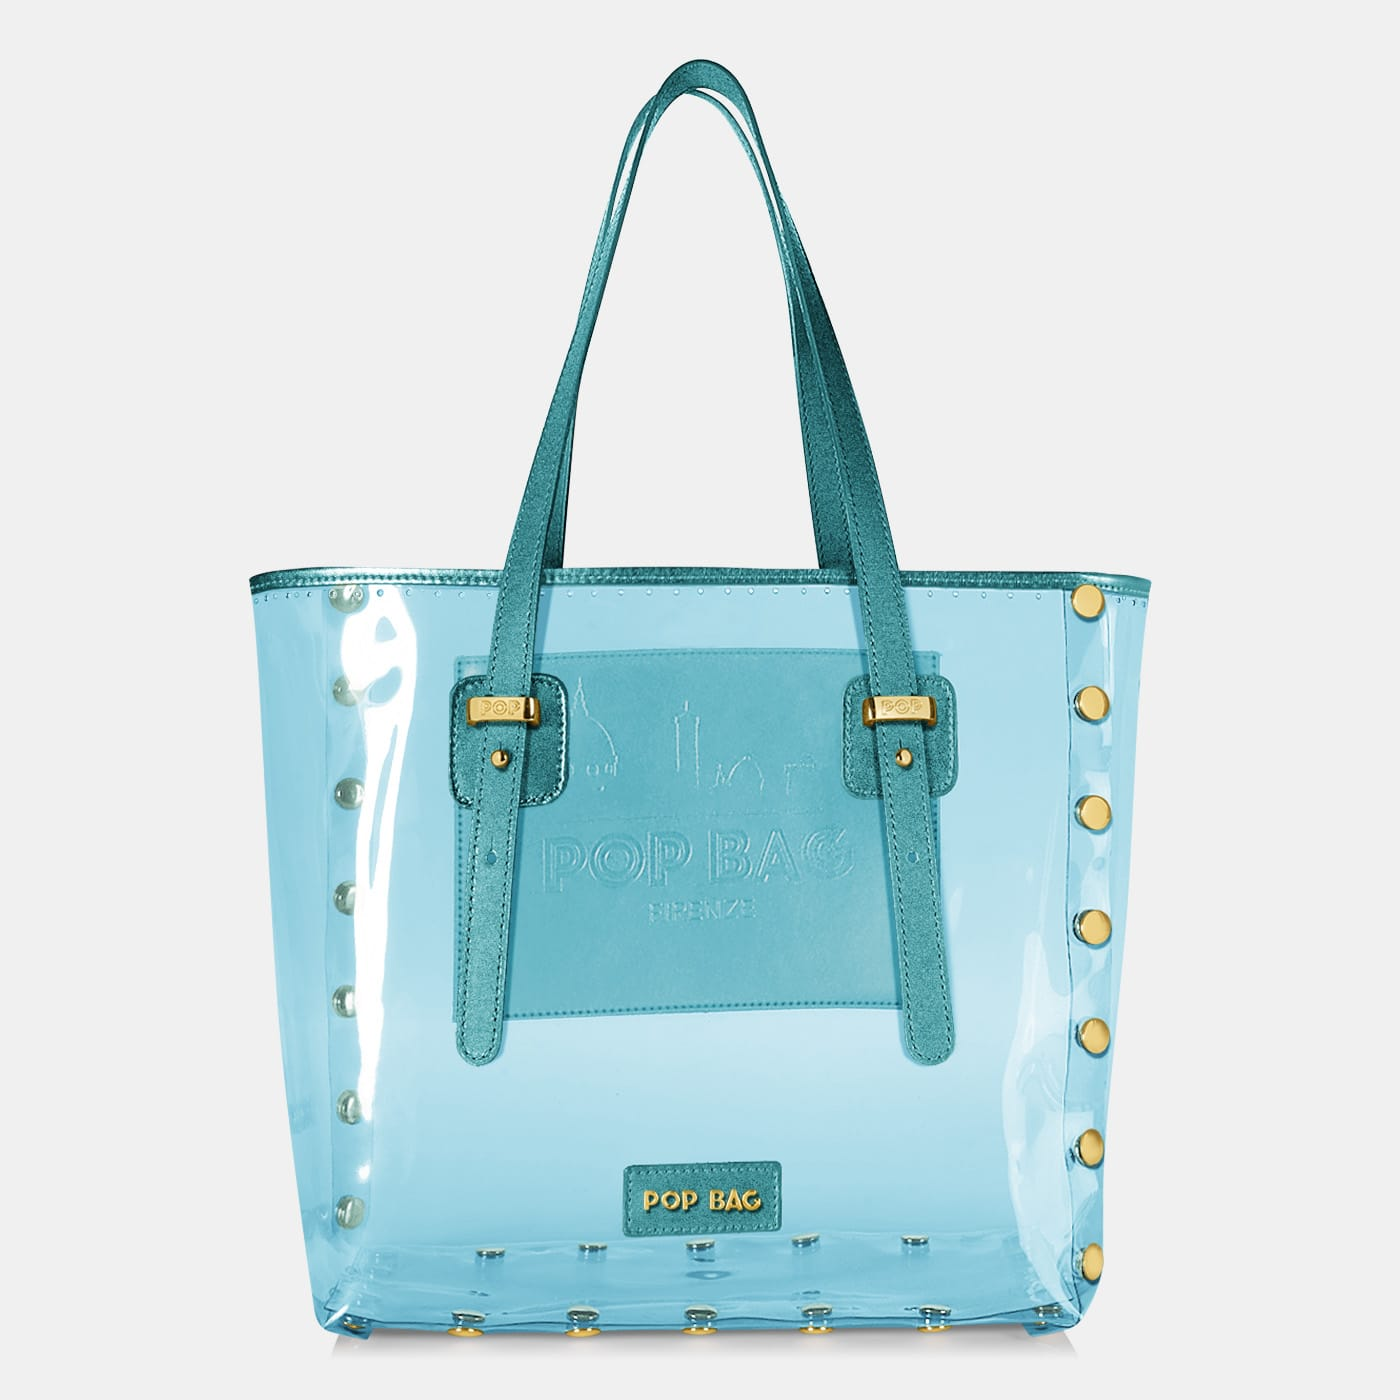 Pop Crystal Bag - Light Blue - Large